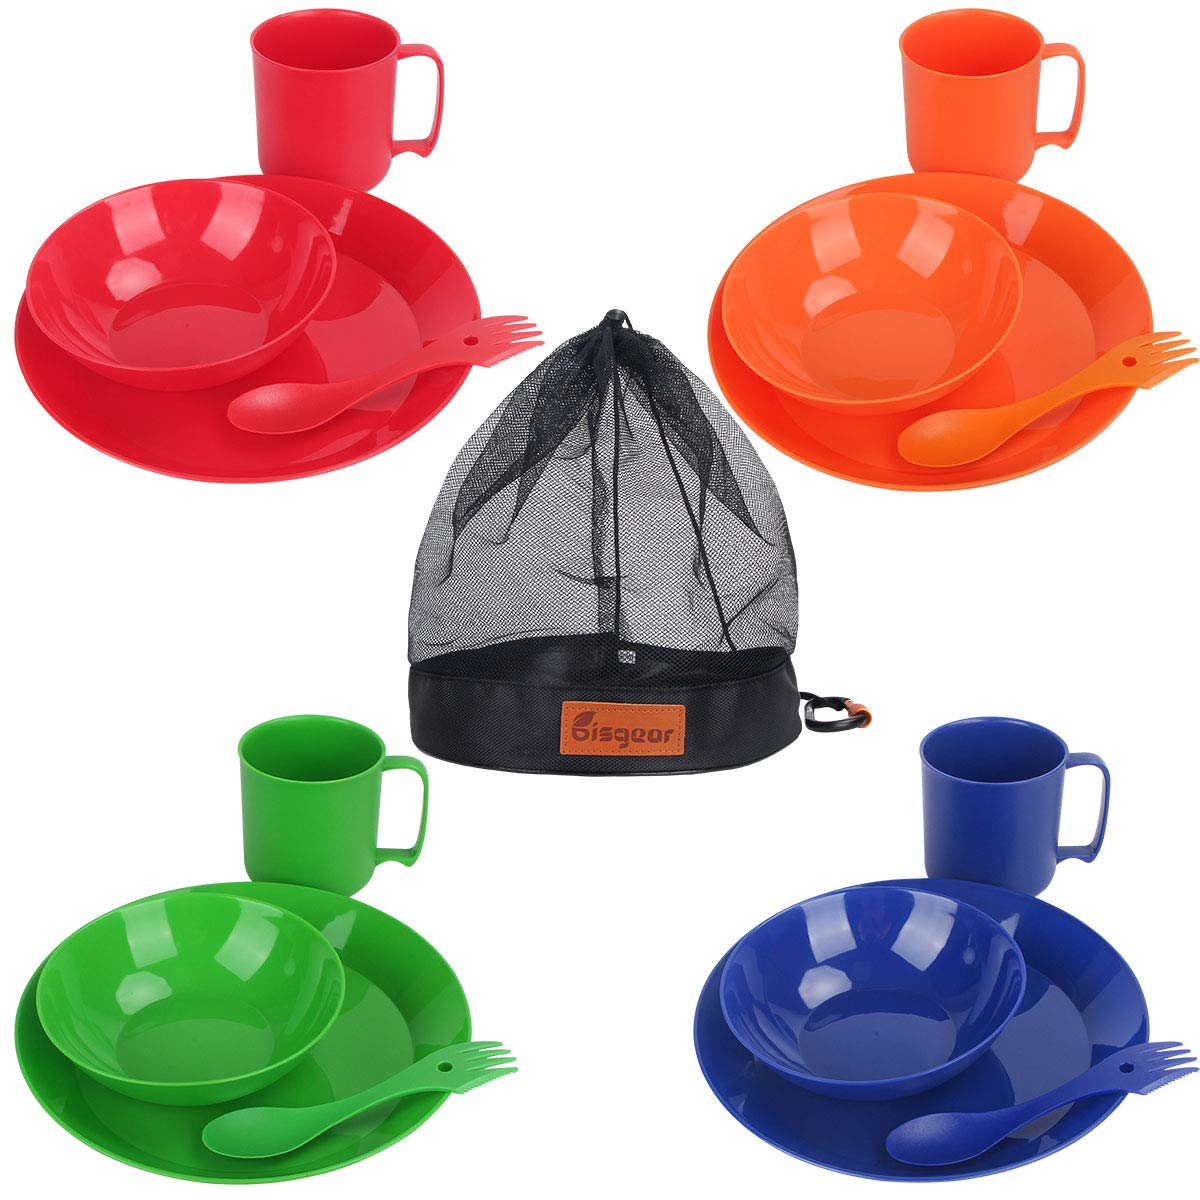 Perfect for Hiking /& Backpacking Family Vacation Bisgear Camping Mess Kit Picnic 4 Person Lightweight Dinnerware Family Set with Plates Bowls Cups Mugs/Sporks/Carabiner /& Mesh Bag